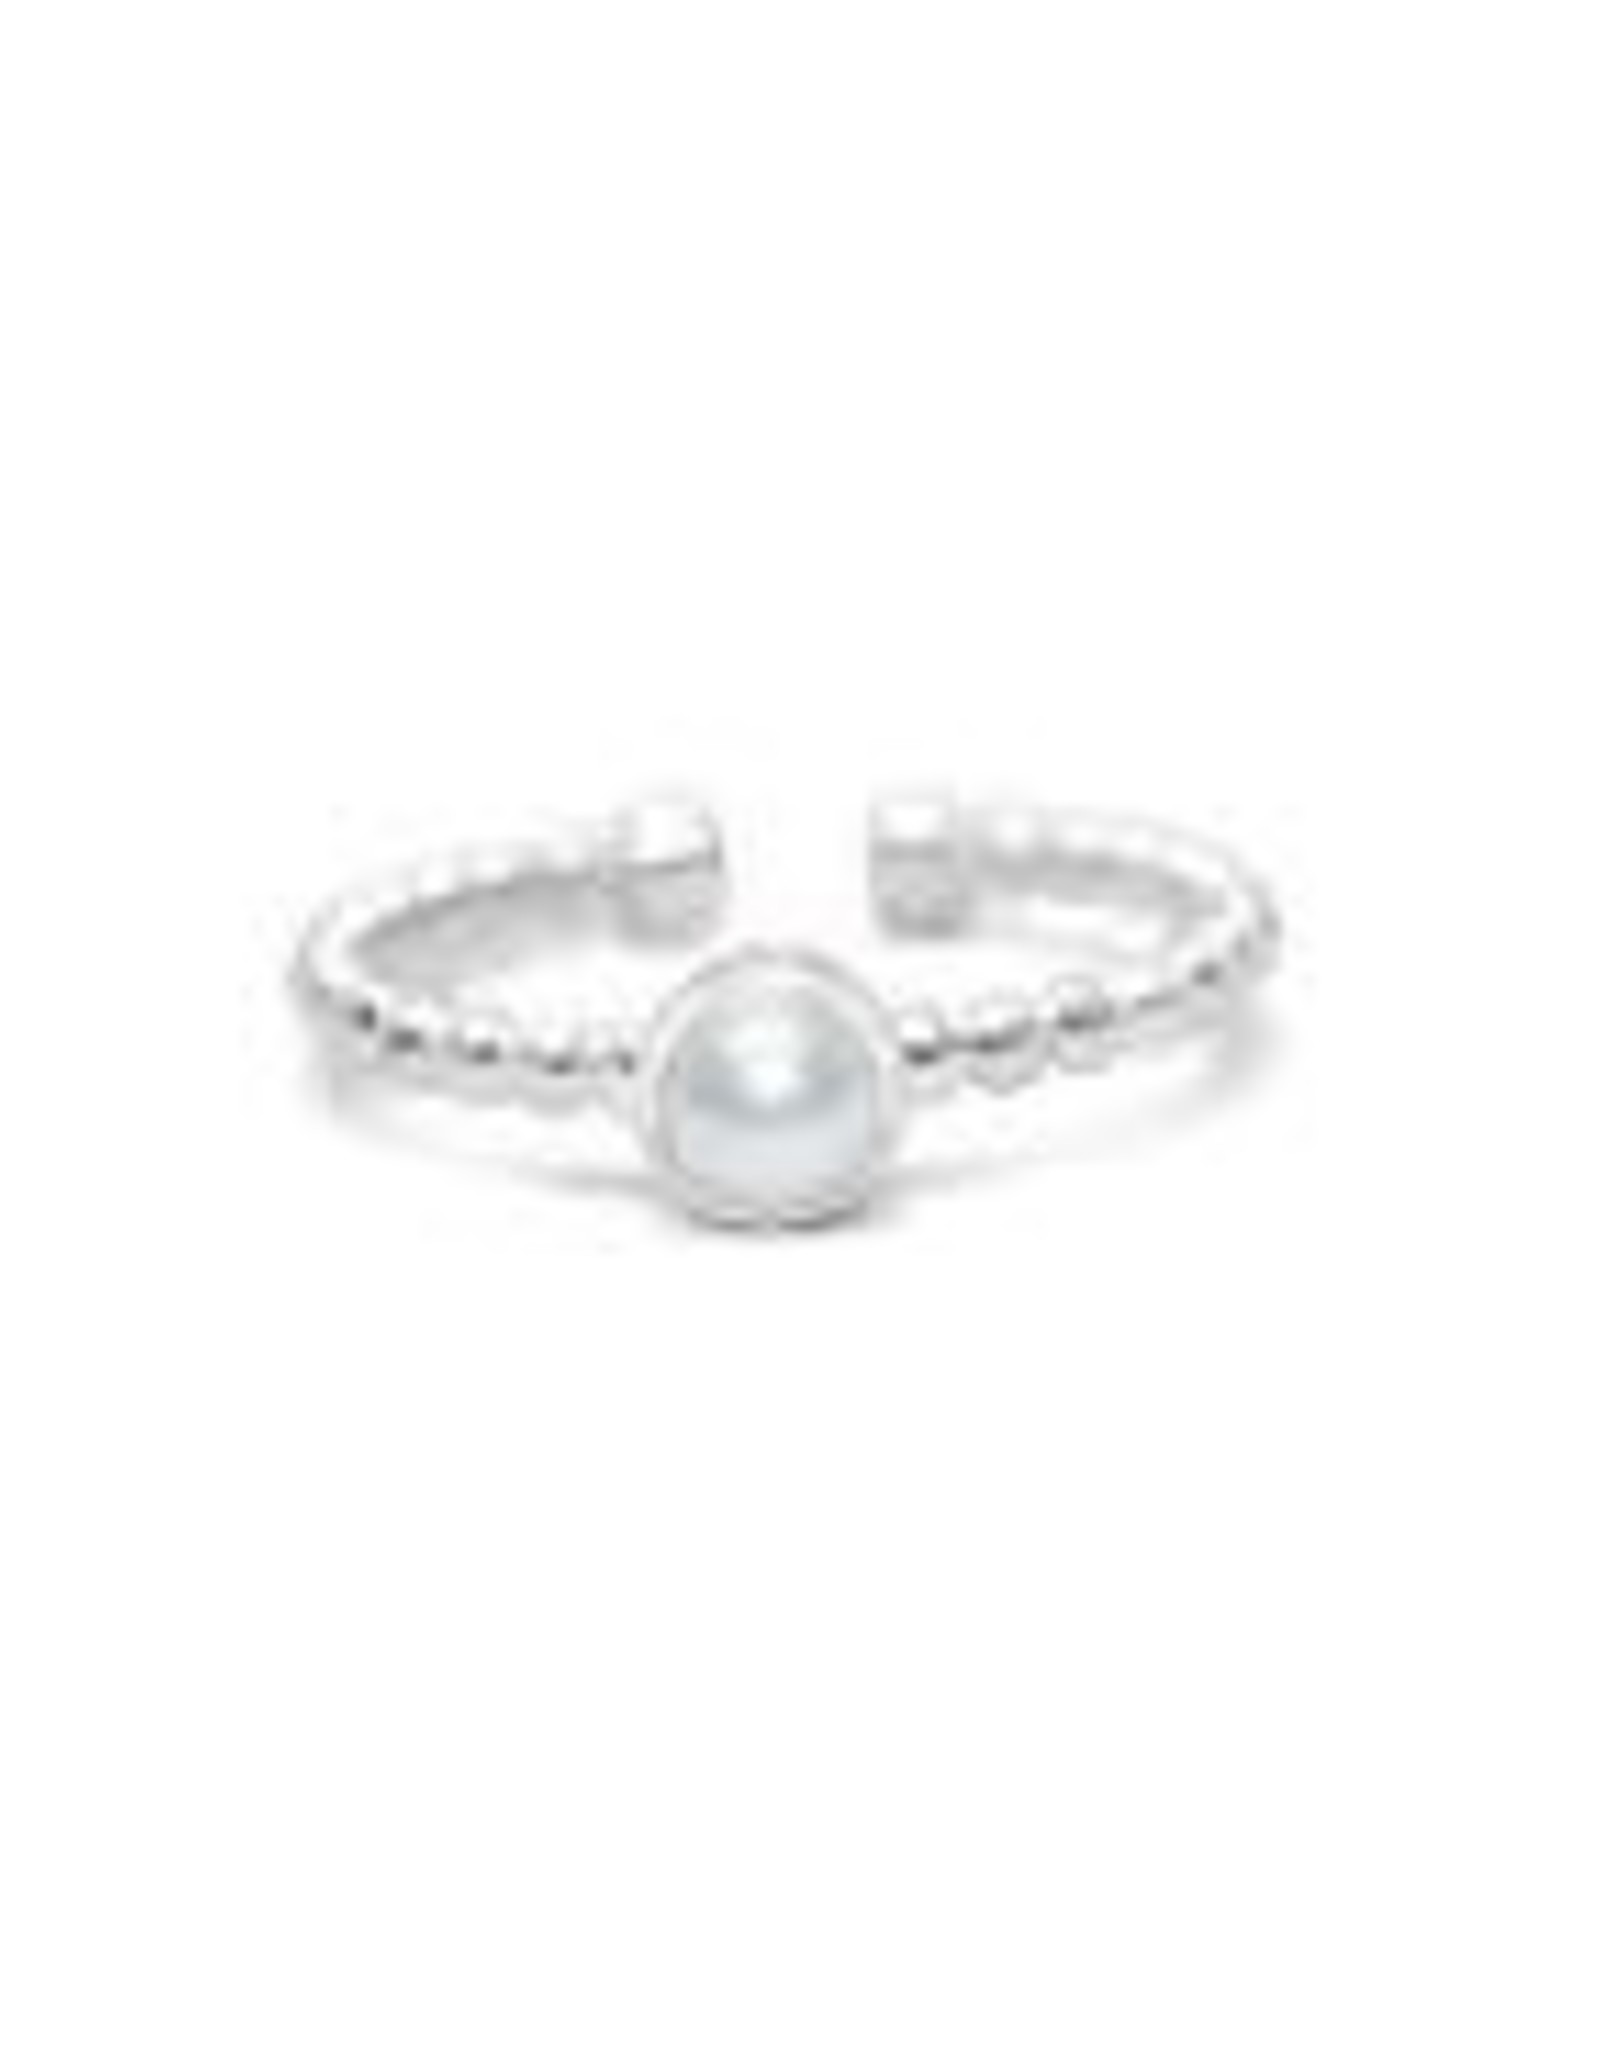 Stia Jewelry Droplet Wire Ring - Pearl, Sterling